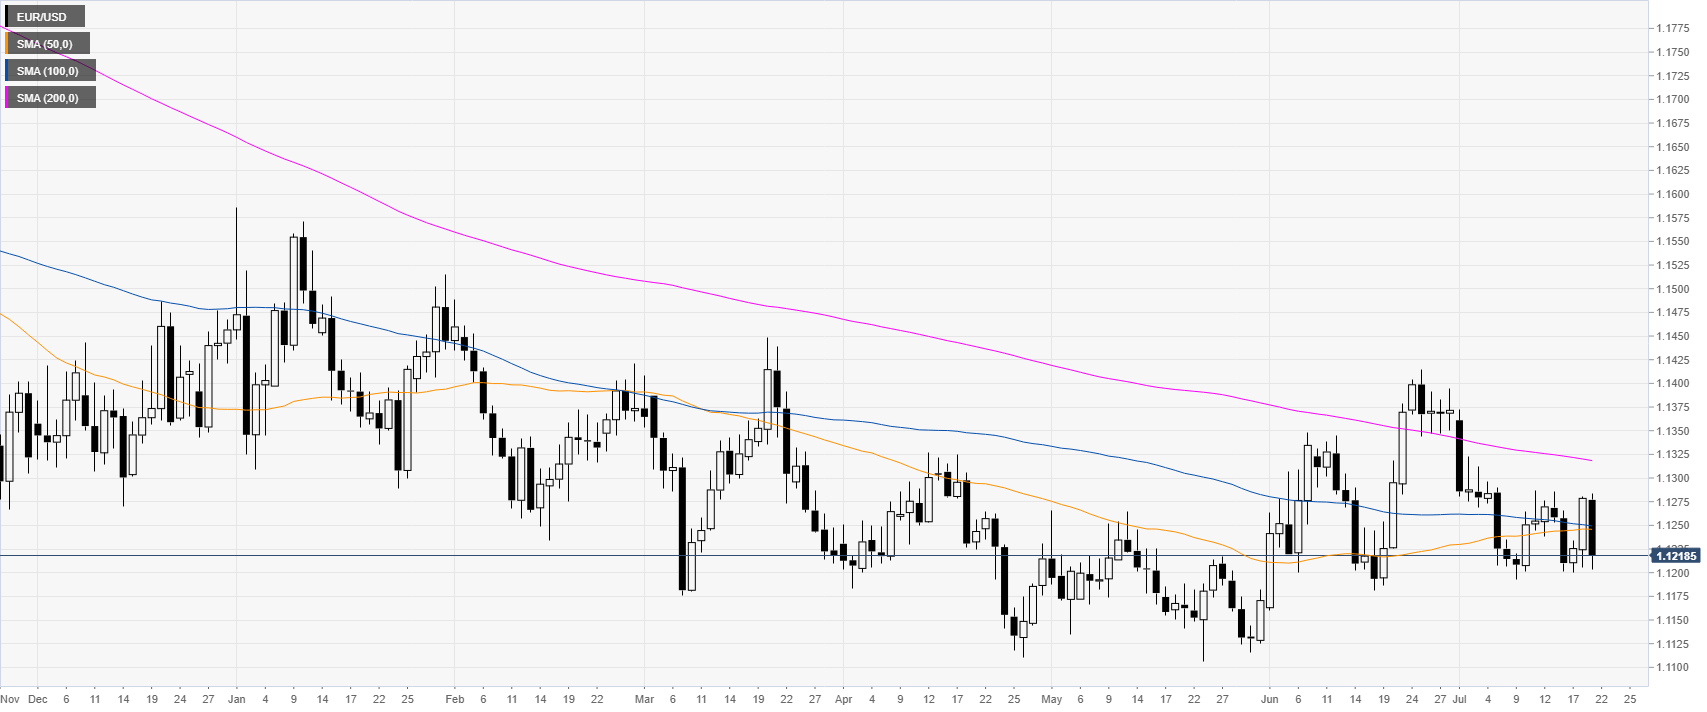 Eur Usd Technical Analysis Euro Ends The Week Near Monthly Lows -